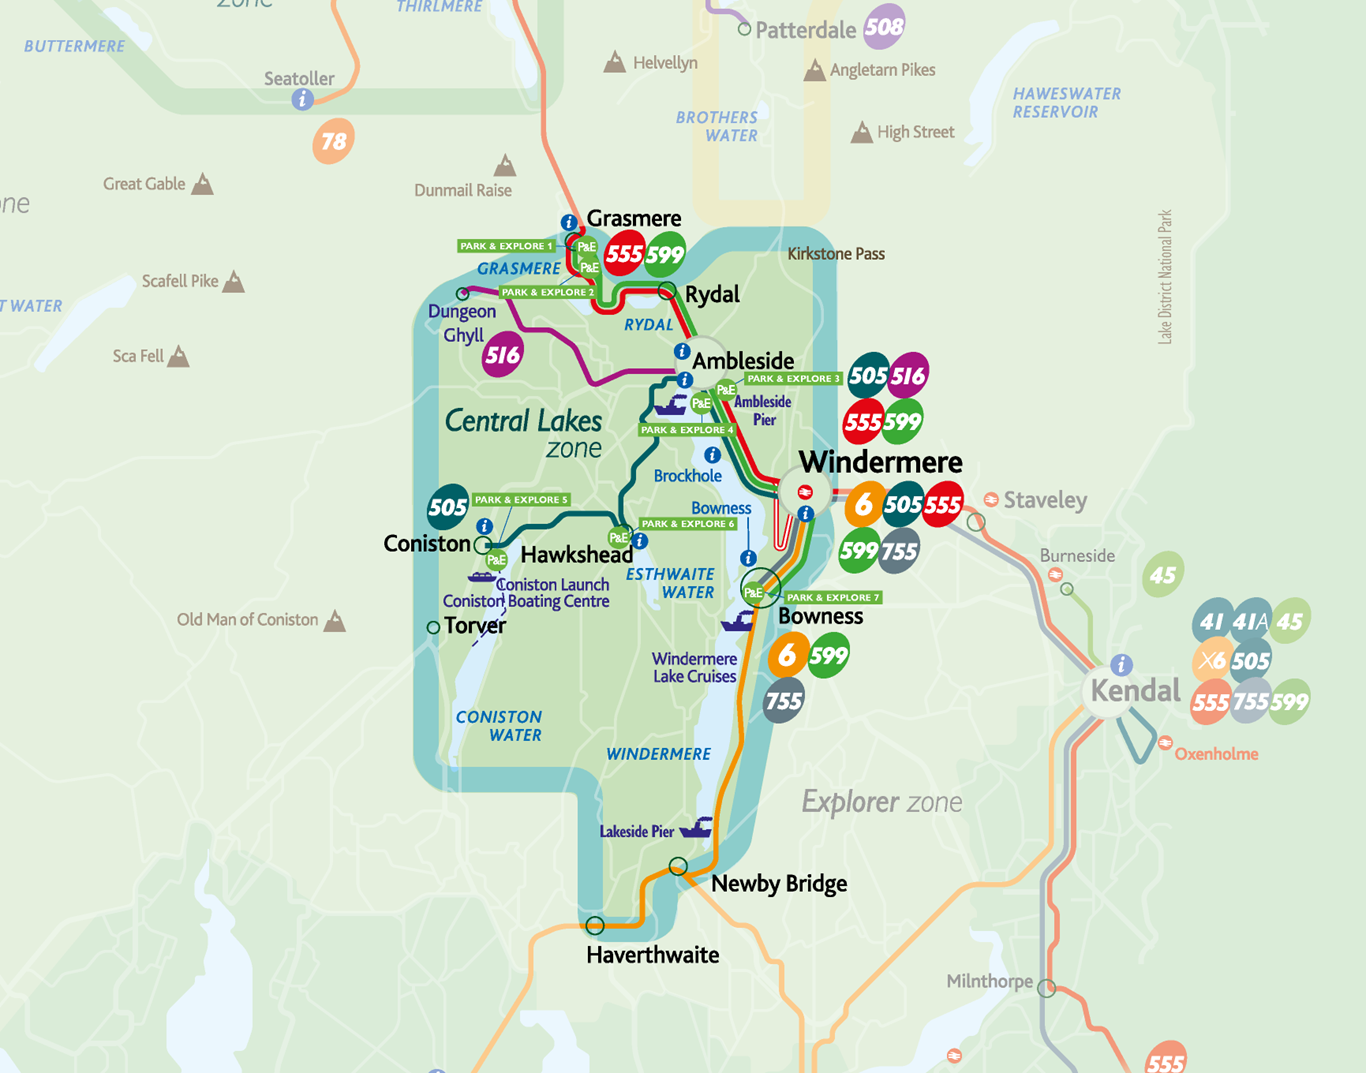 lake district bus map Park And Explore The Lake District Stagecoach lake district bus map